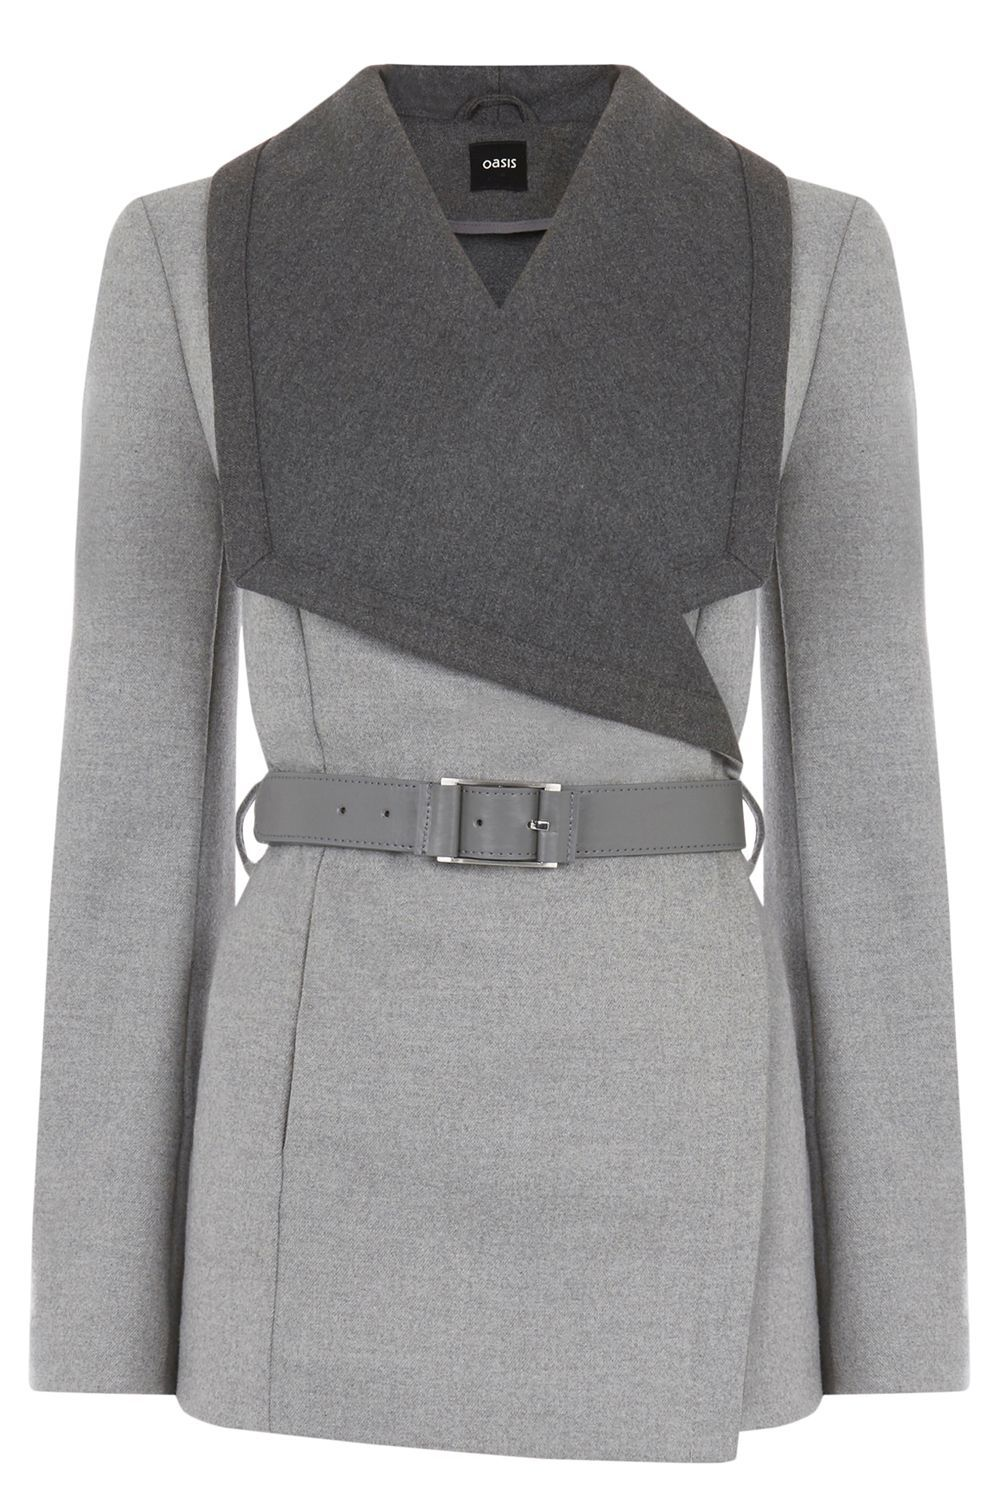 Khloe Belted Drape, Grey - pattern: plain; length: standard; collar: wide lapels; style: wrap around; secondary colour: charcoal; predominant colour: light grey; occasions: casual; fit: tailored/fitted; waist detail: belted waist/tie at waist/drawstring; sleeve length: long sleeve; sleeve style: standard; collar break: medium; pattern type: fabric; texture group: woven bulky/heavy; fibres: viscose/rayon - mix; multicoloured: multicoloured; season: s/s 2016; wardrobe: basic